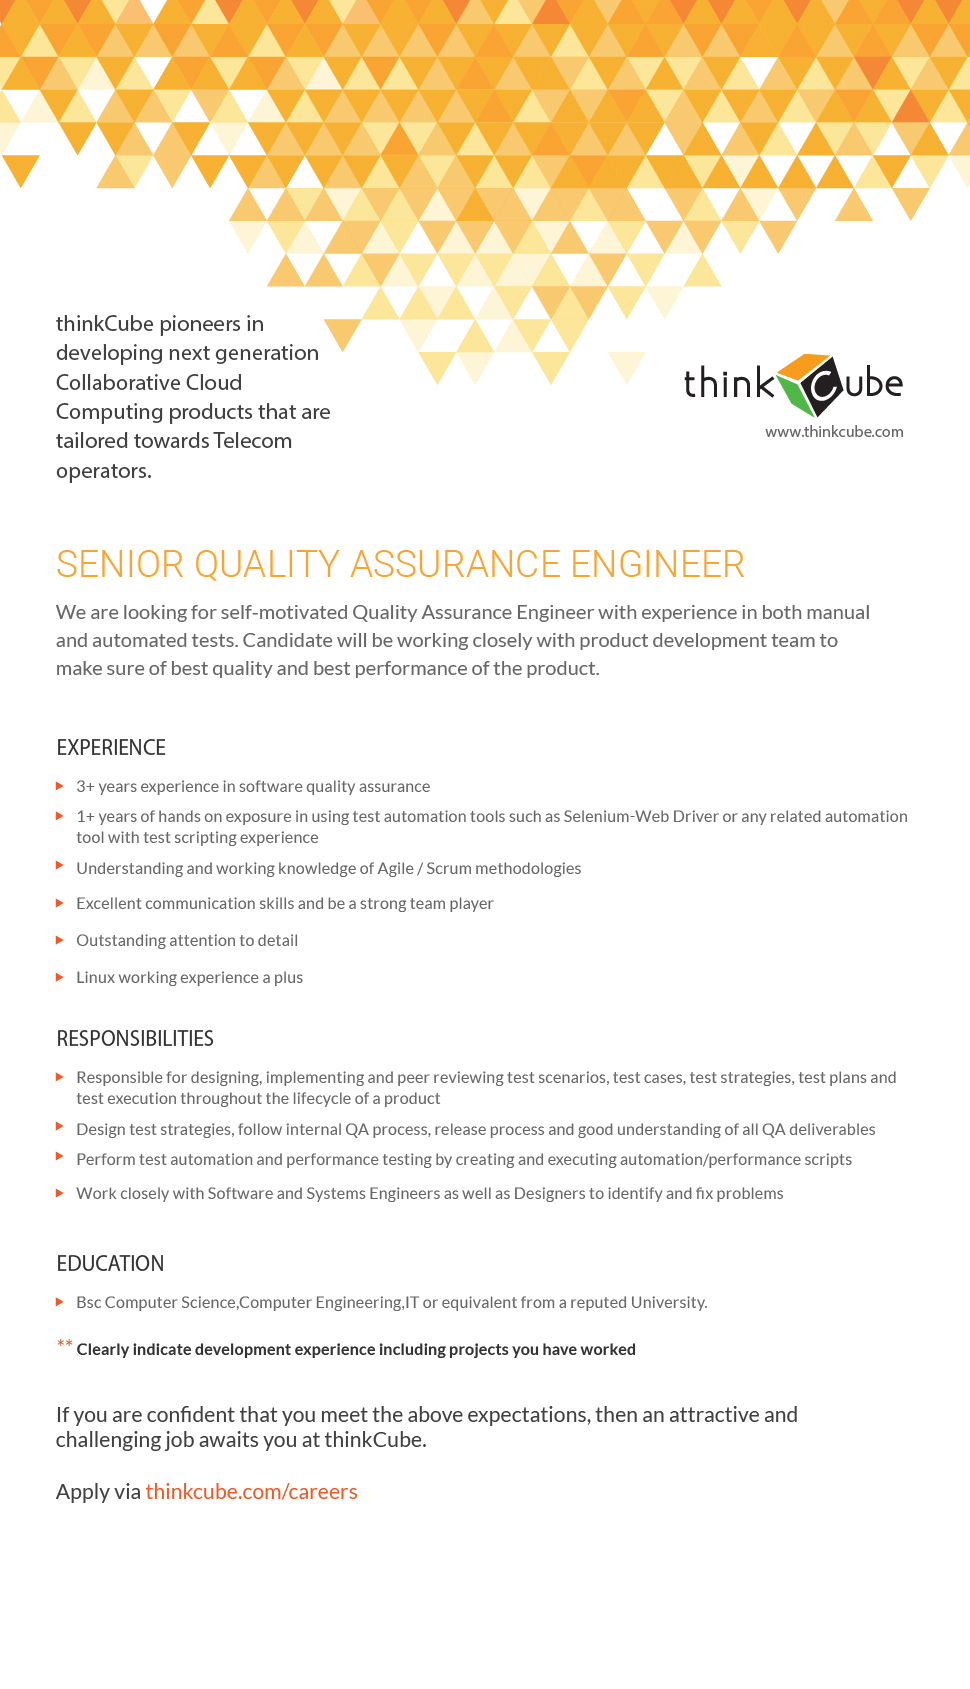 SENIOR QUALITY ASSURANCE ENGINEER